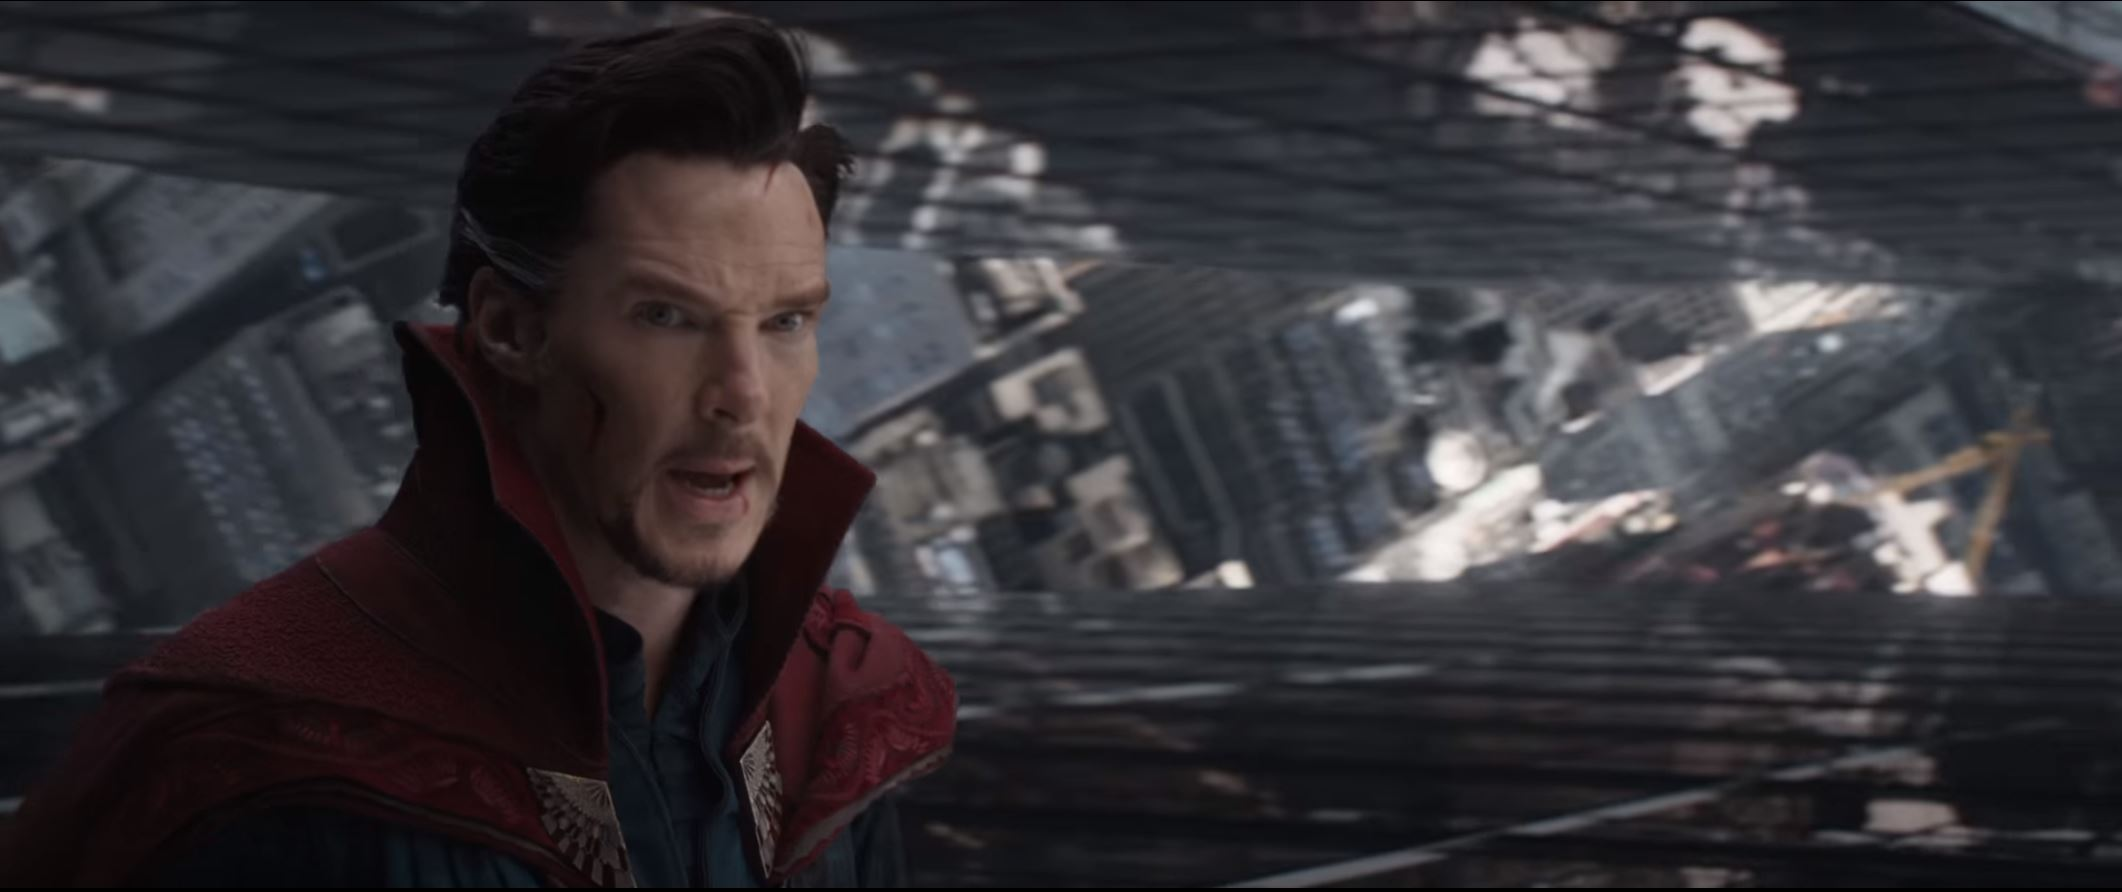 Check Out The New Doctor Strange Trailer!